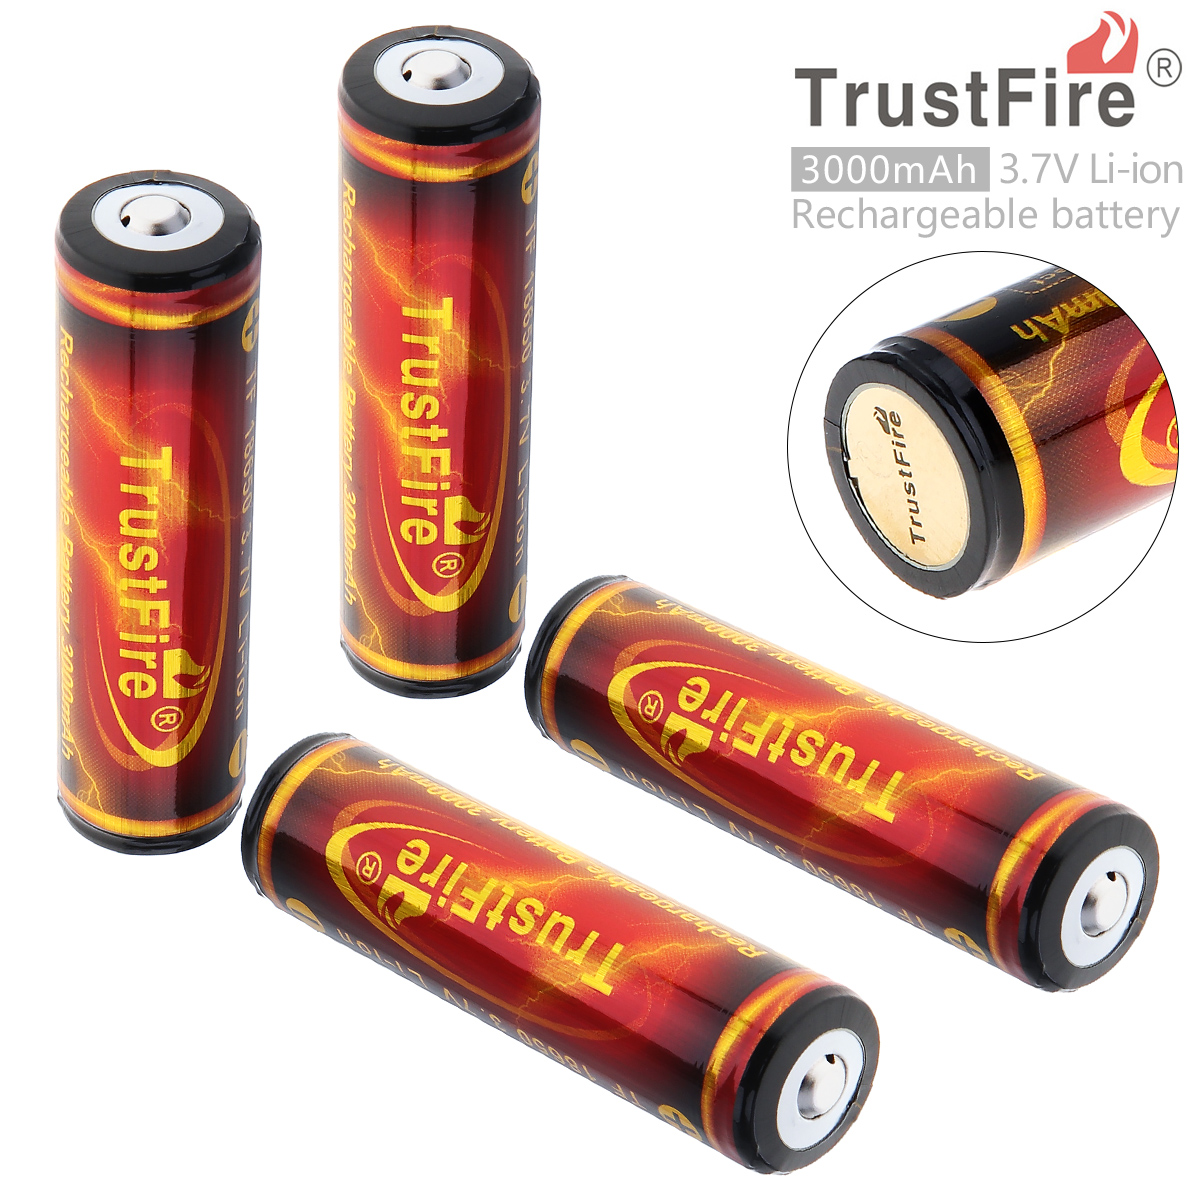 все цены на 4pcs TrustFire PCB Protected 18650 3.7V 3000mAh High Capacity Flashlight Rechargeable Battery